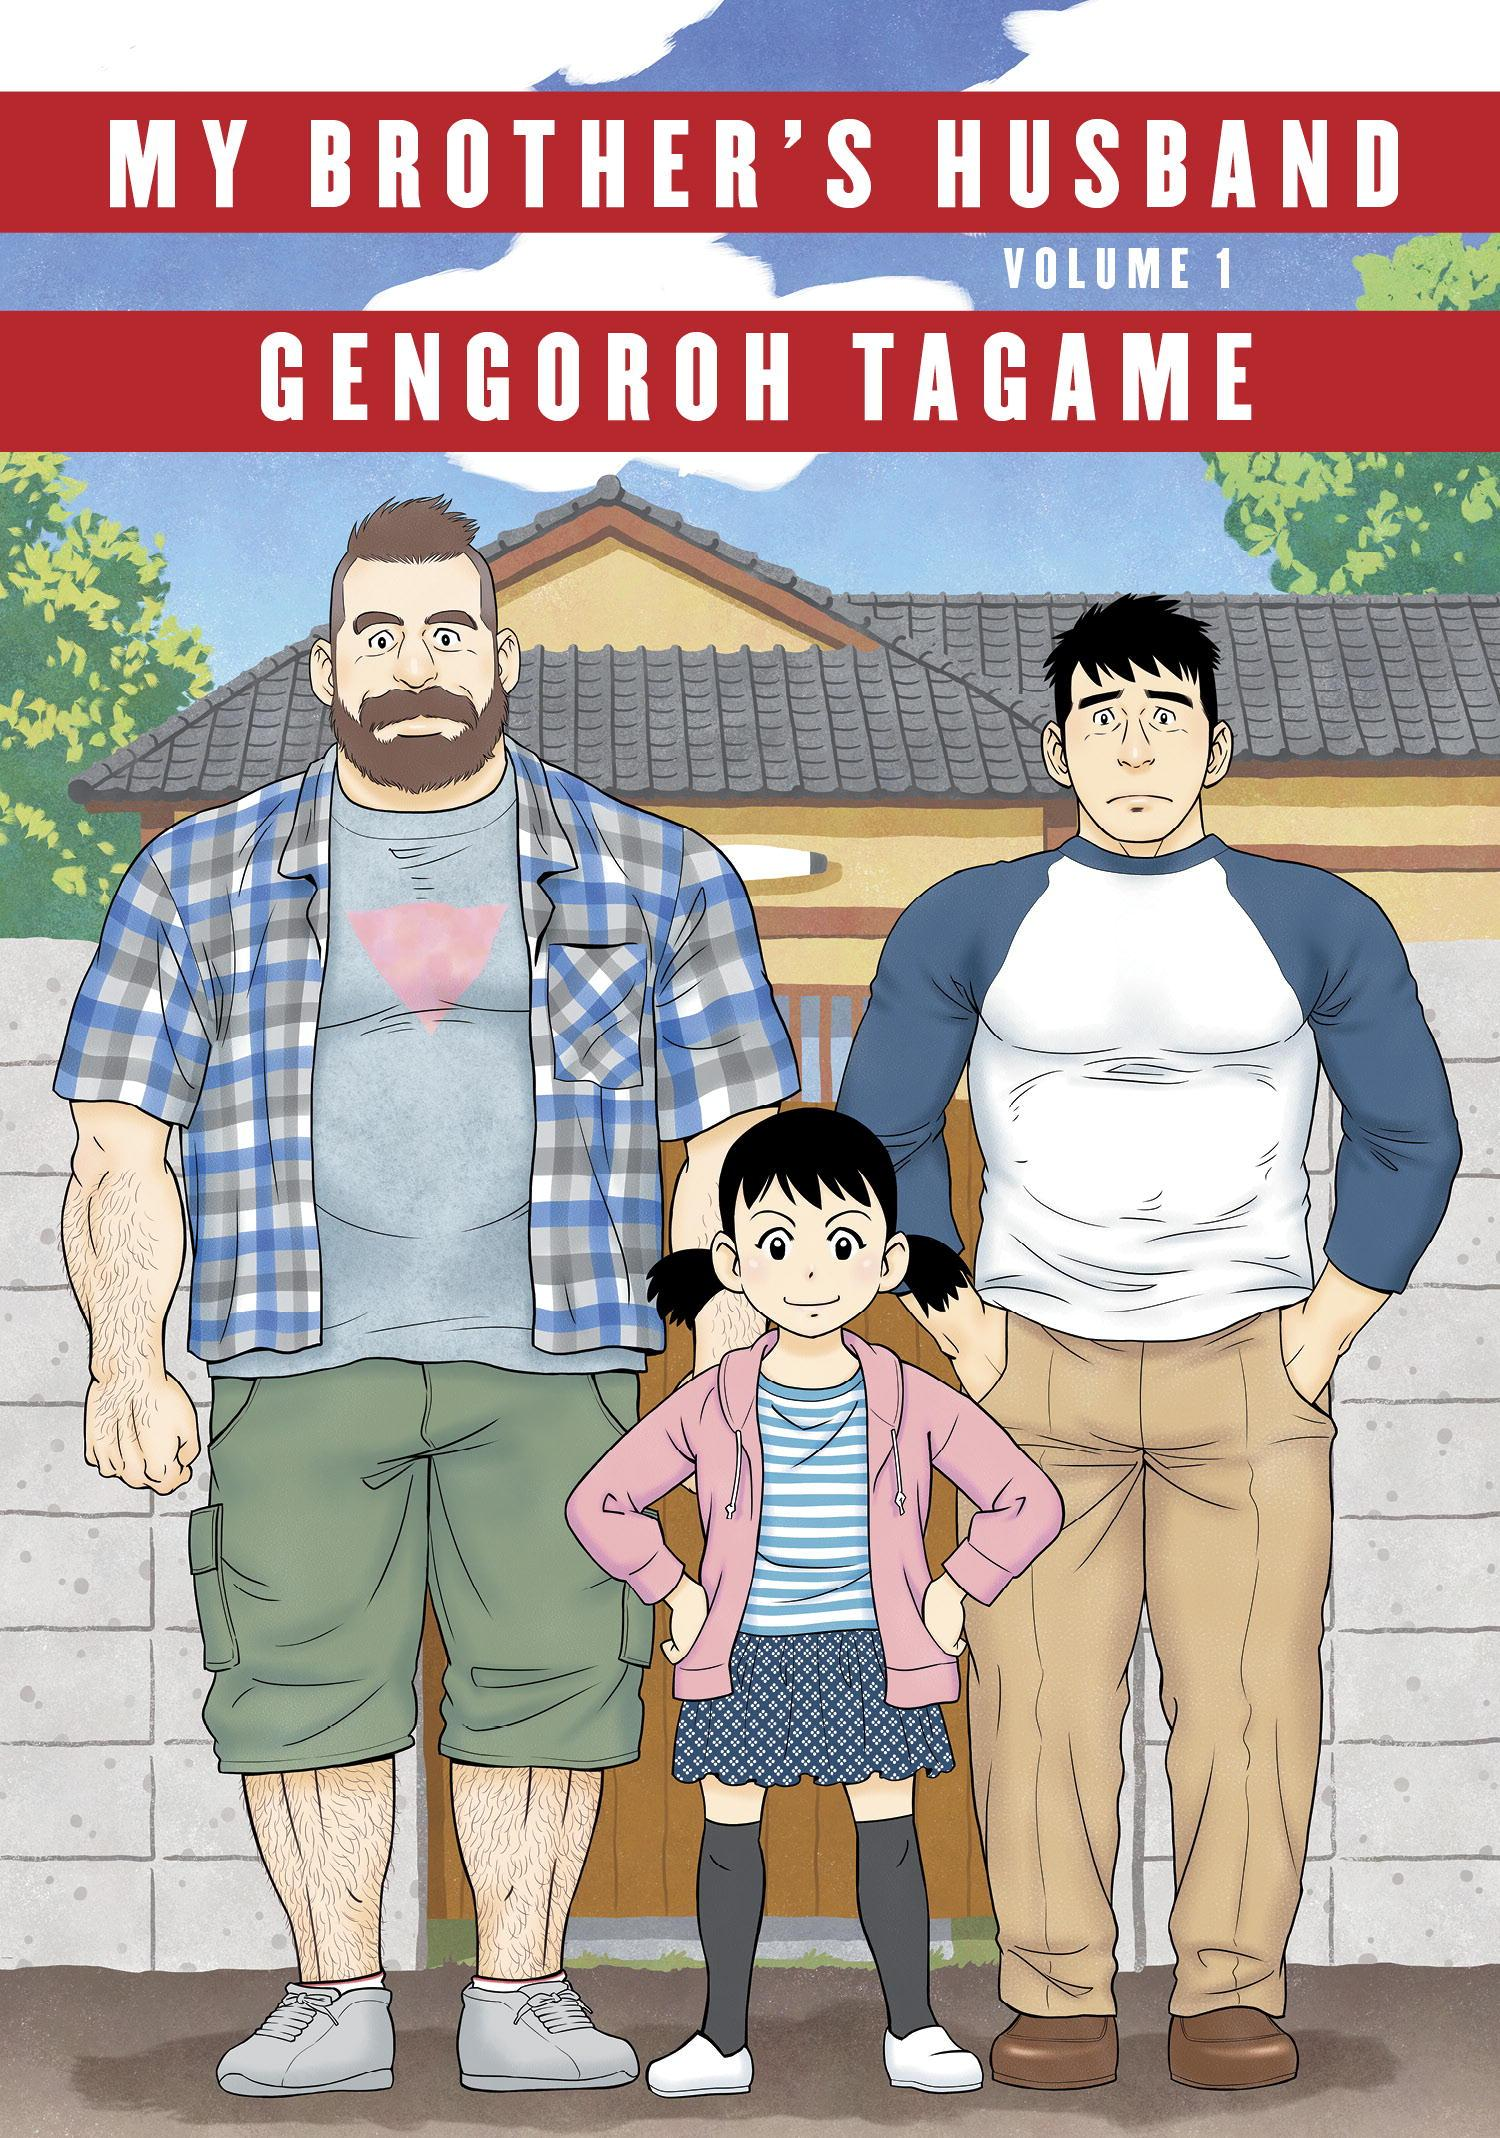 My Brother's Husband, Volume 1 by Anne Ishii, Gengoroh Tagame, ISBN: 9781101871522